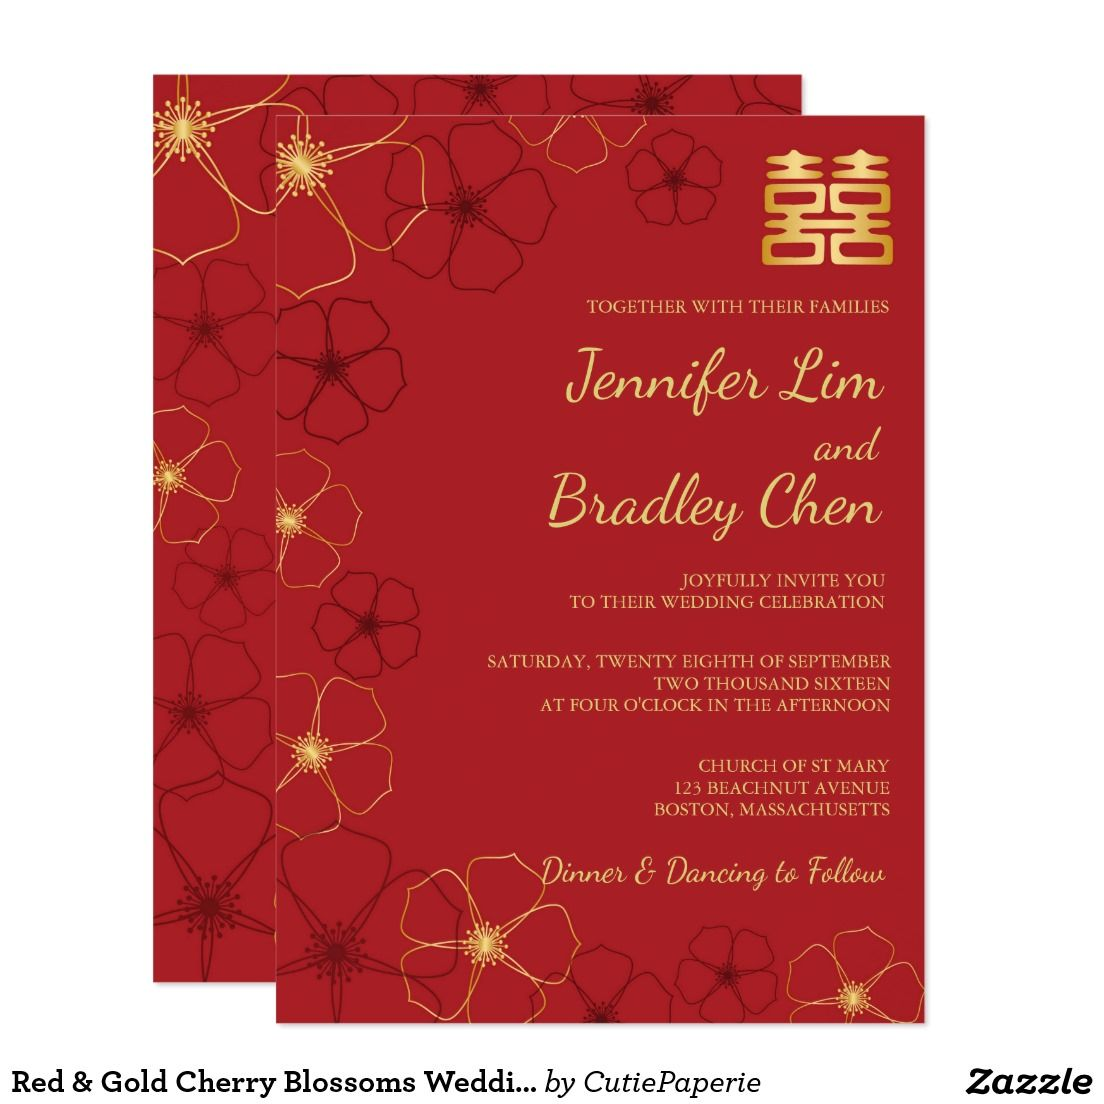 Red & Gold Cherry Blossoms Wedding Invitation Card | Wedding ...